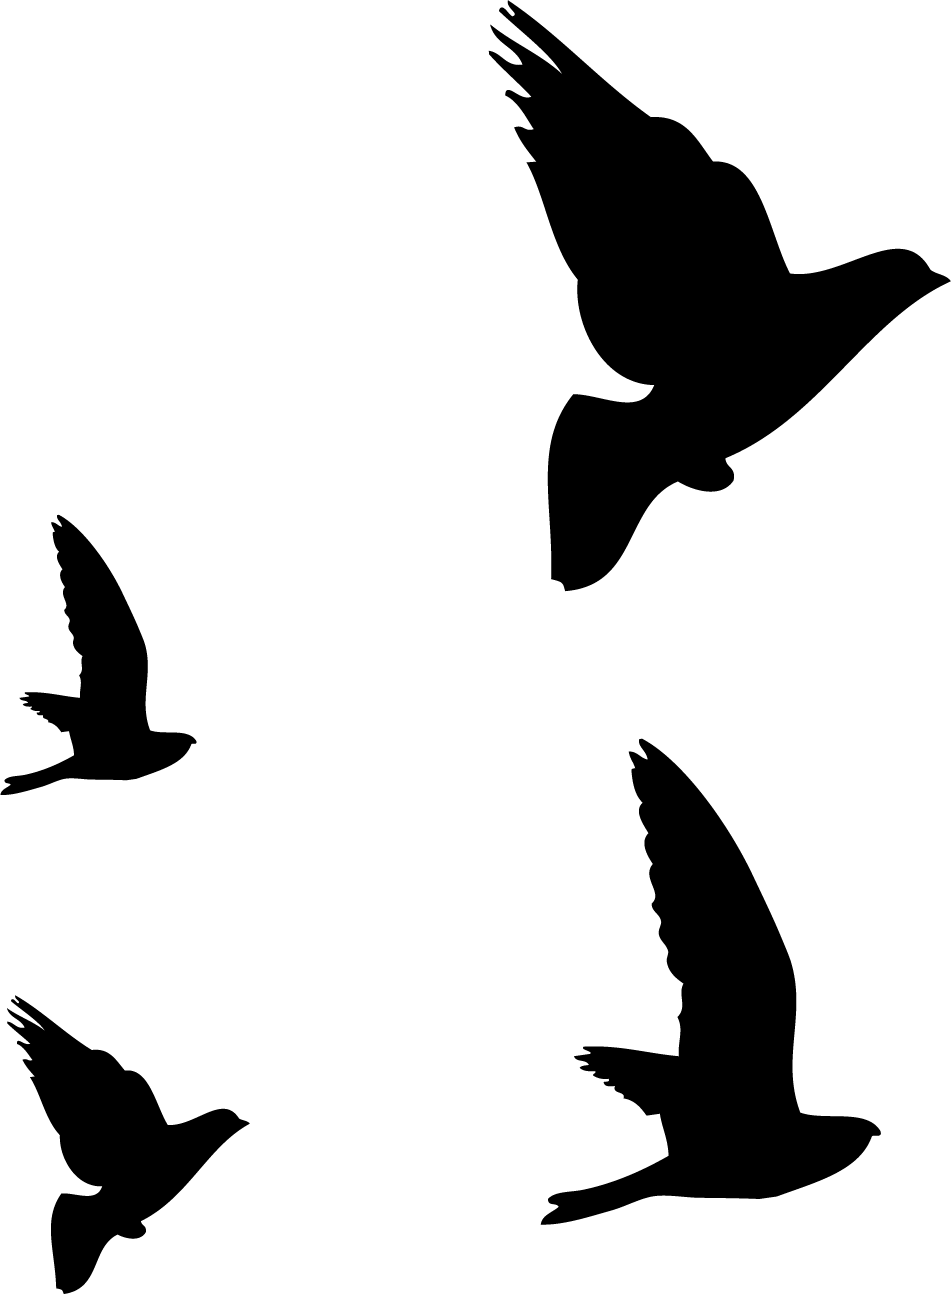 Hummingbird Flight Silhouette Drawing Birds Silhouette Png Download 951 1294 Free Transparent Bird Png Download Clip Art Library